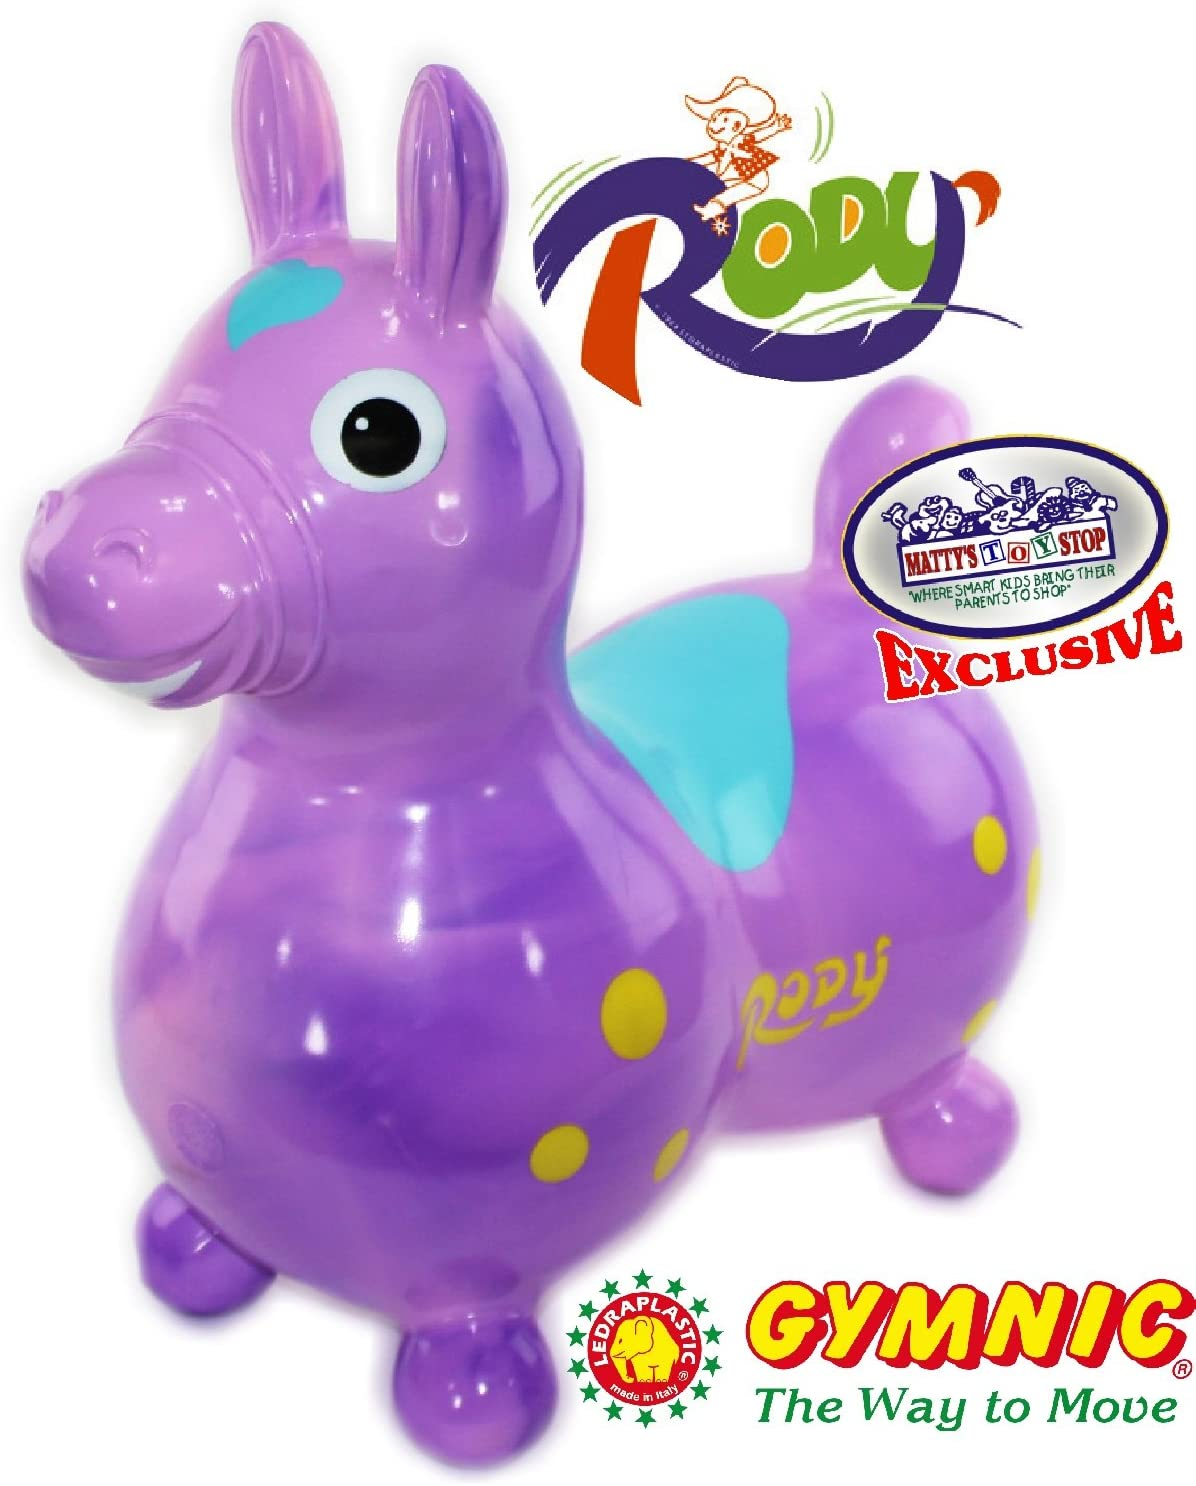 Matty/'s Toy Stop Exclusive Purple /& Pink Swirl Mattys Toy Stop Exclusive Purple /& Pink Swirl 70254 70254 Gymnic Rody Horse Inflatable Bounce /& Ride